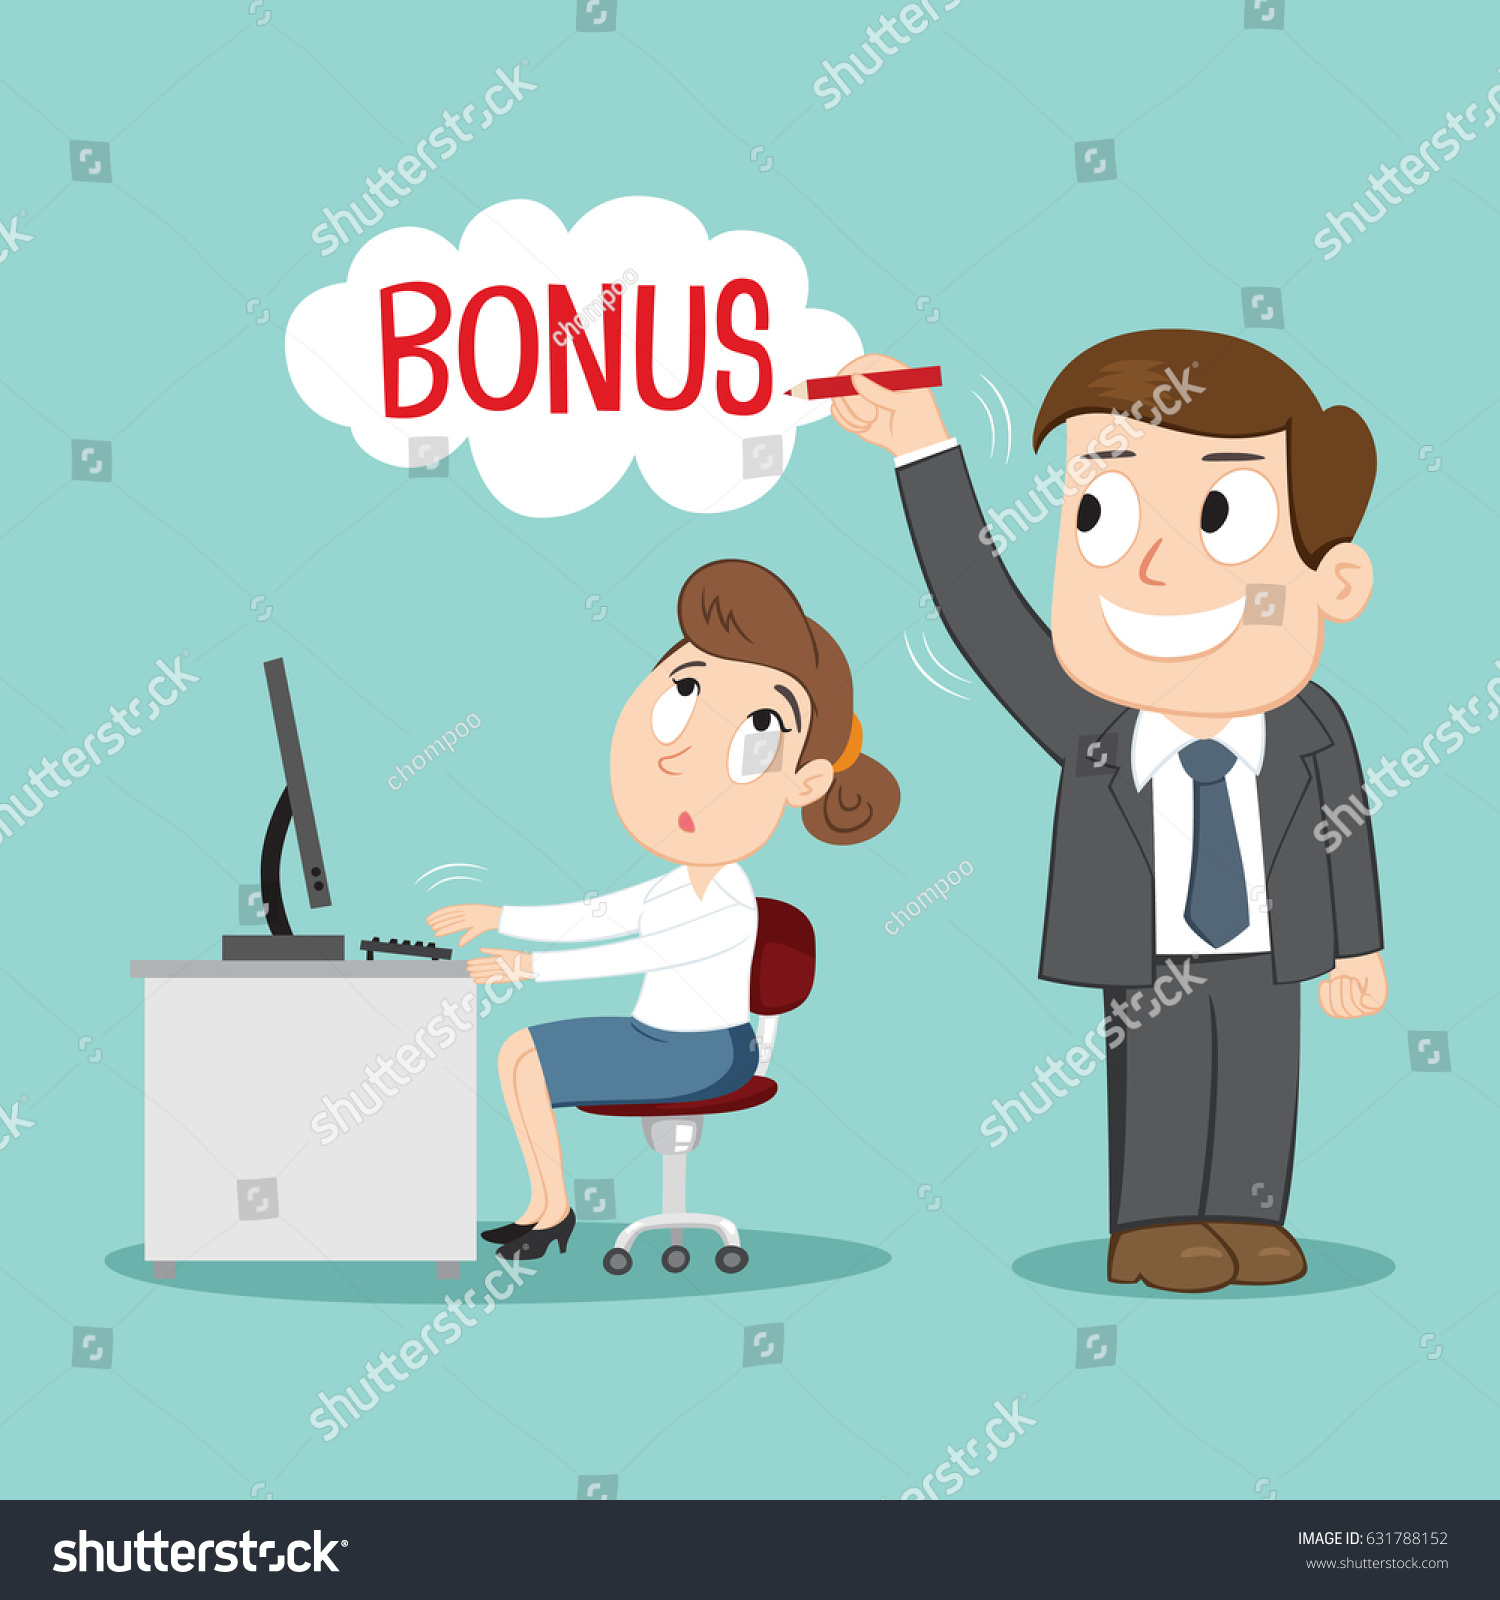 About bonuses for work